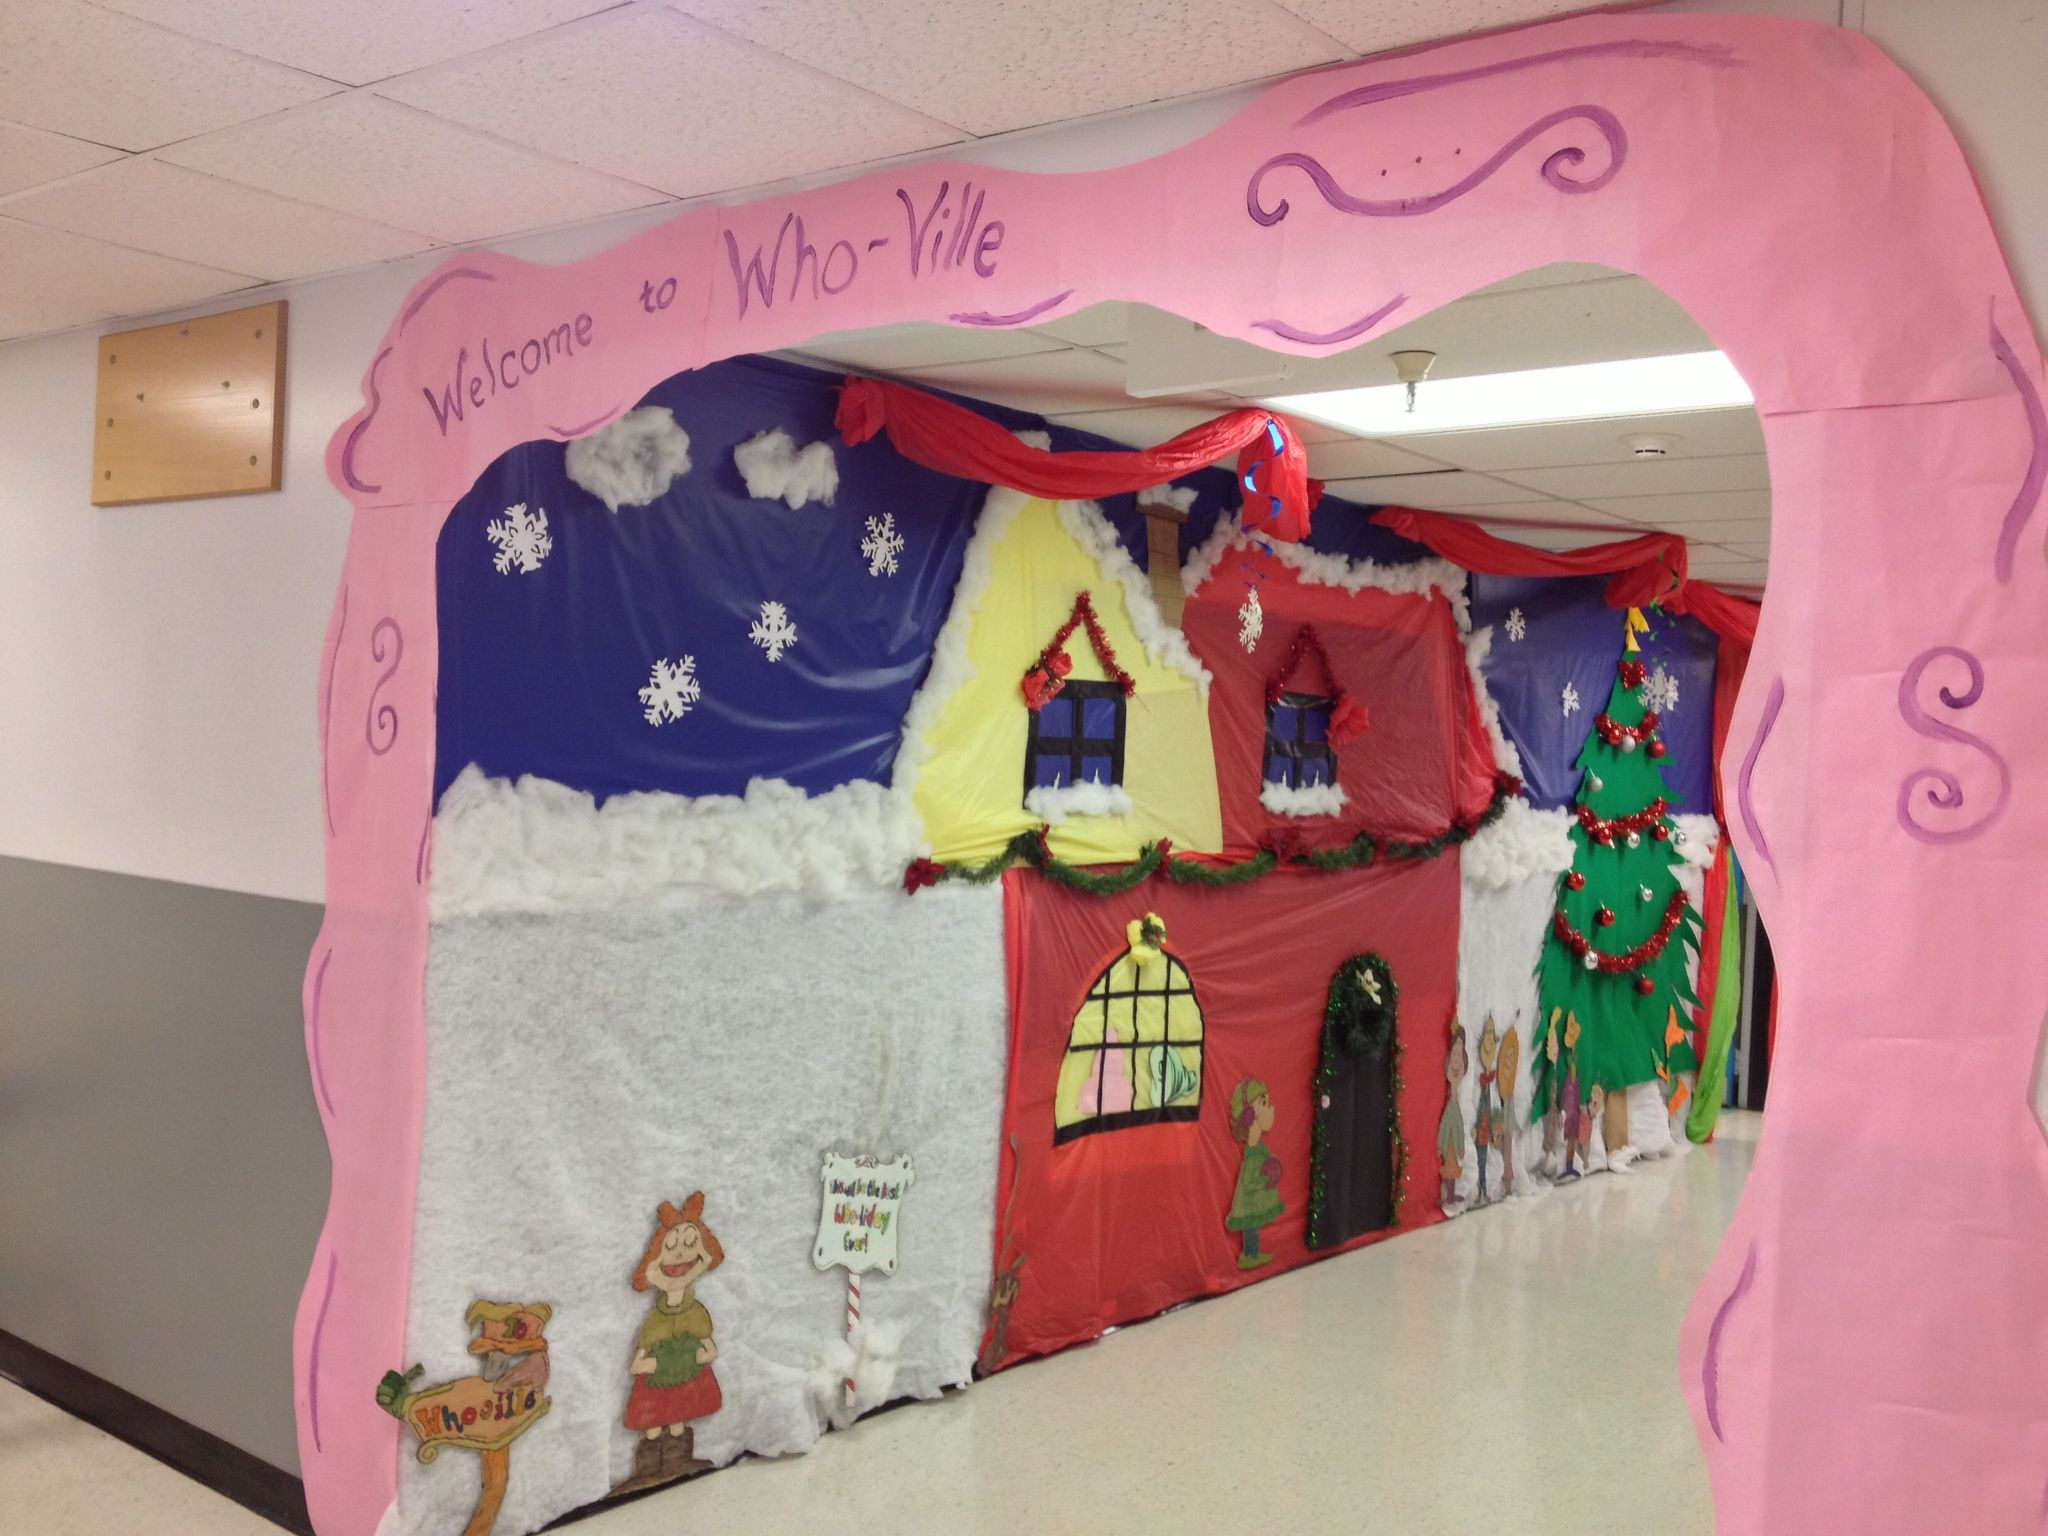 White Christmas Classroom Decorations ~ Who ville hallway outside my second grade classroom